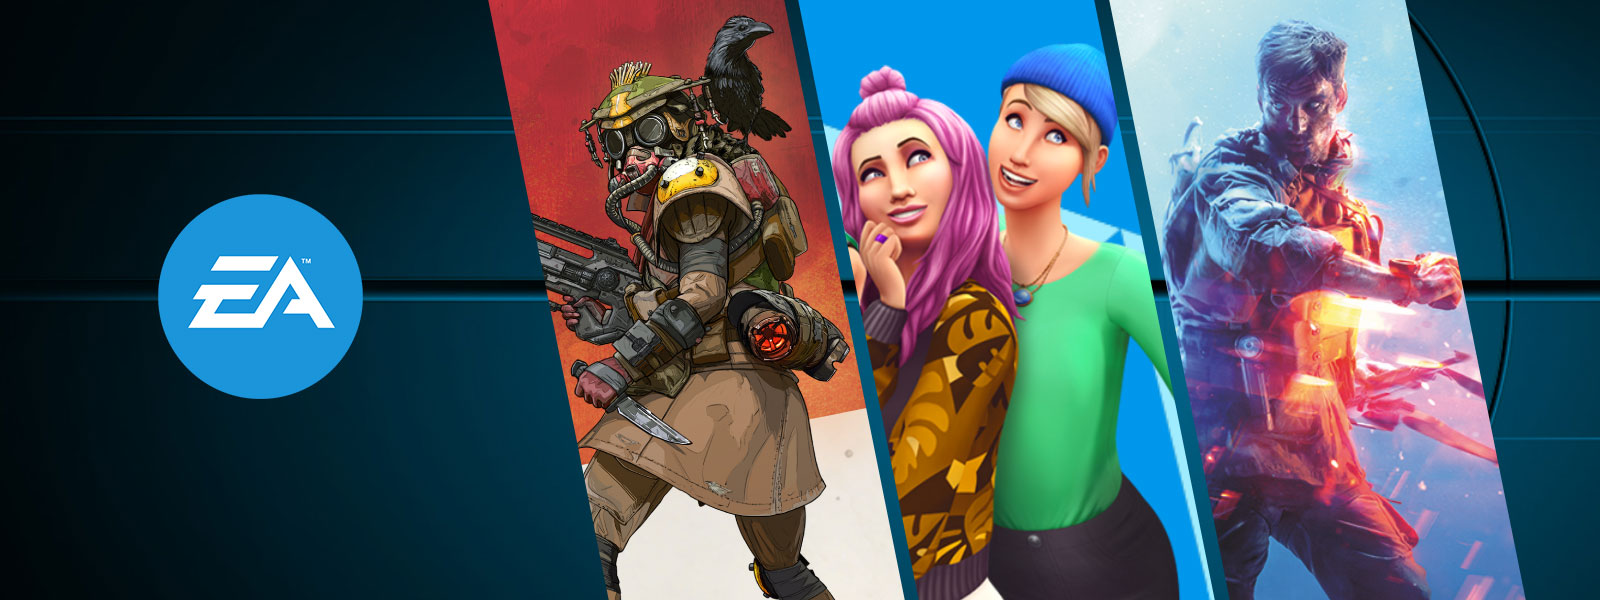 A collage of EA games on sale. Apex Legends Founder's Pack, The Sims, and Battlefield 5.